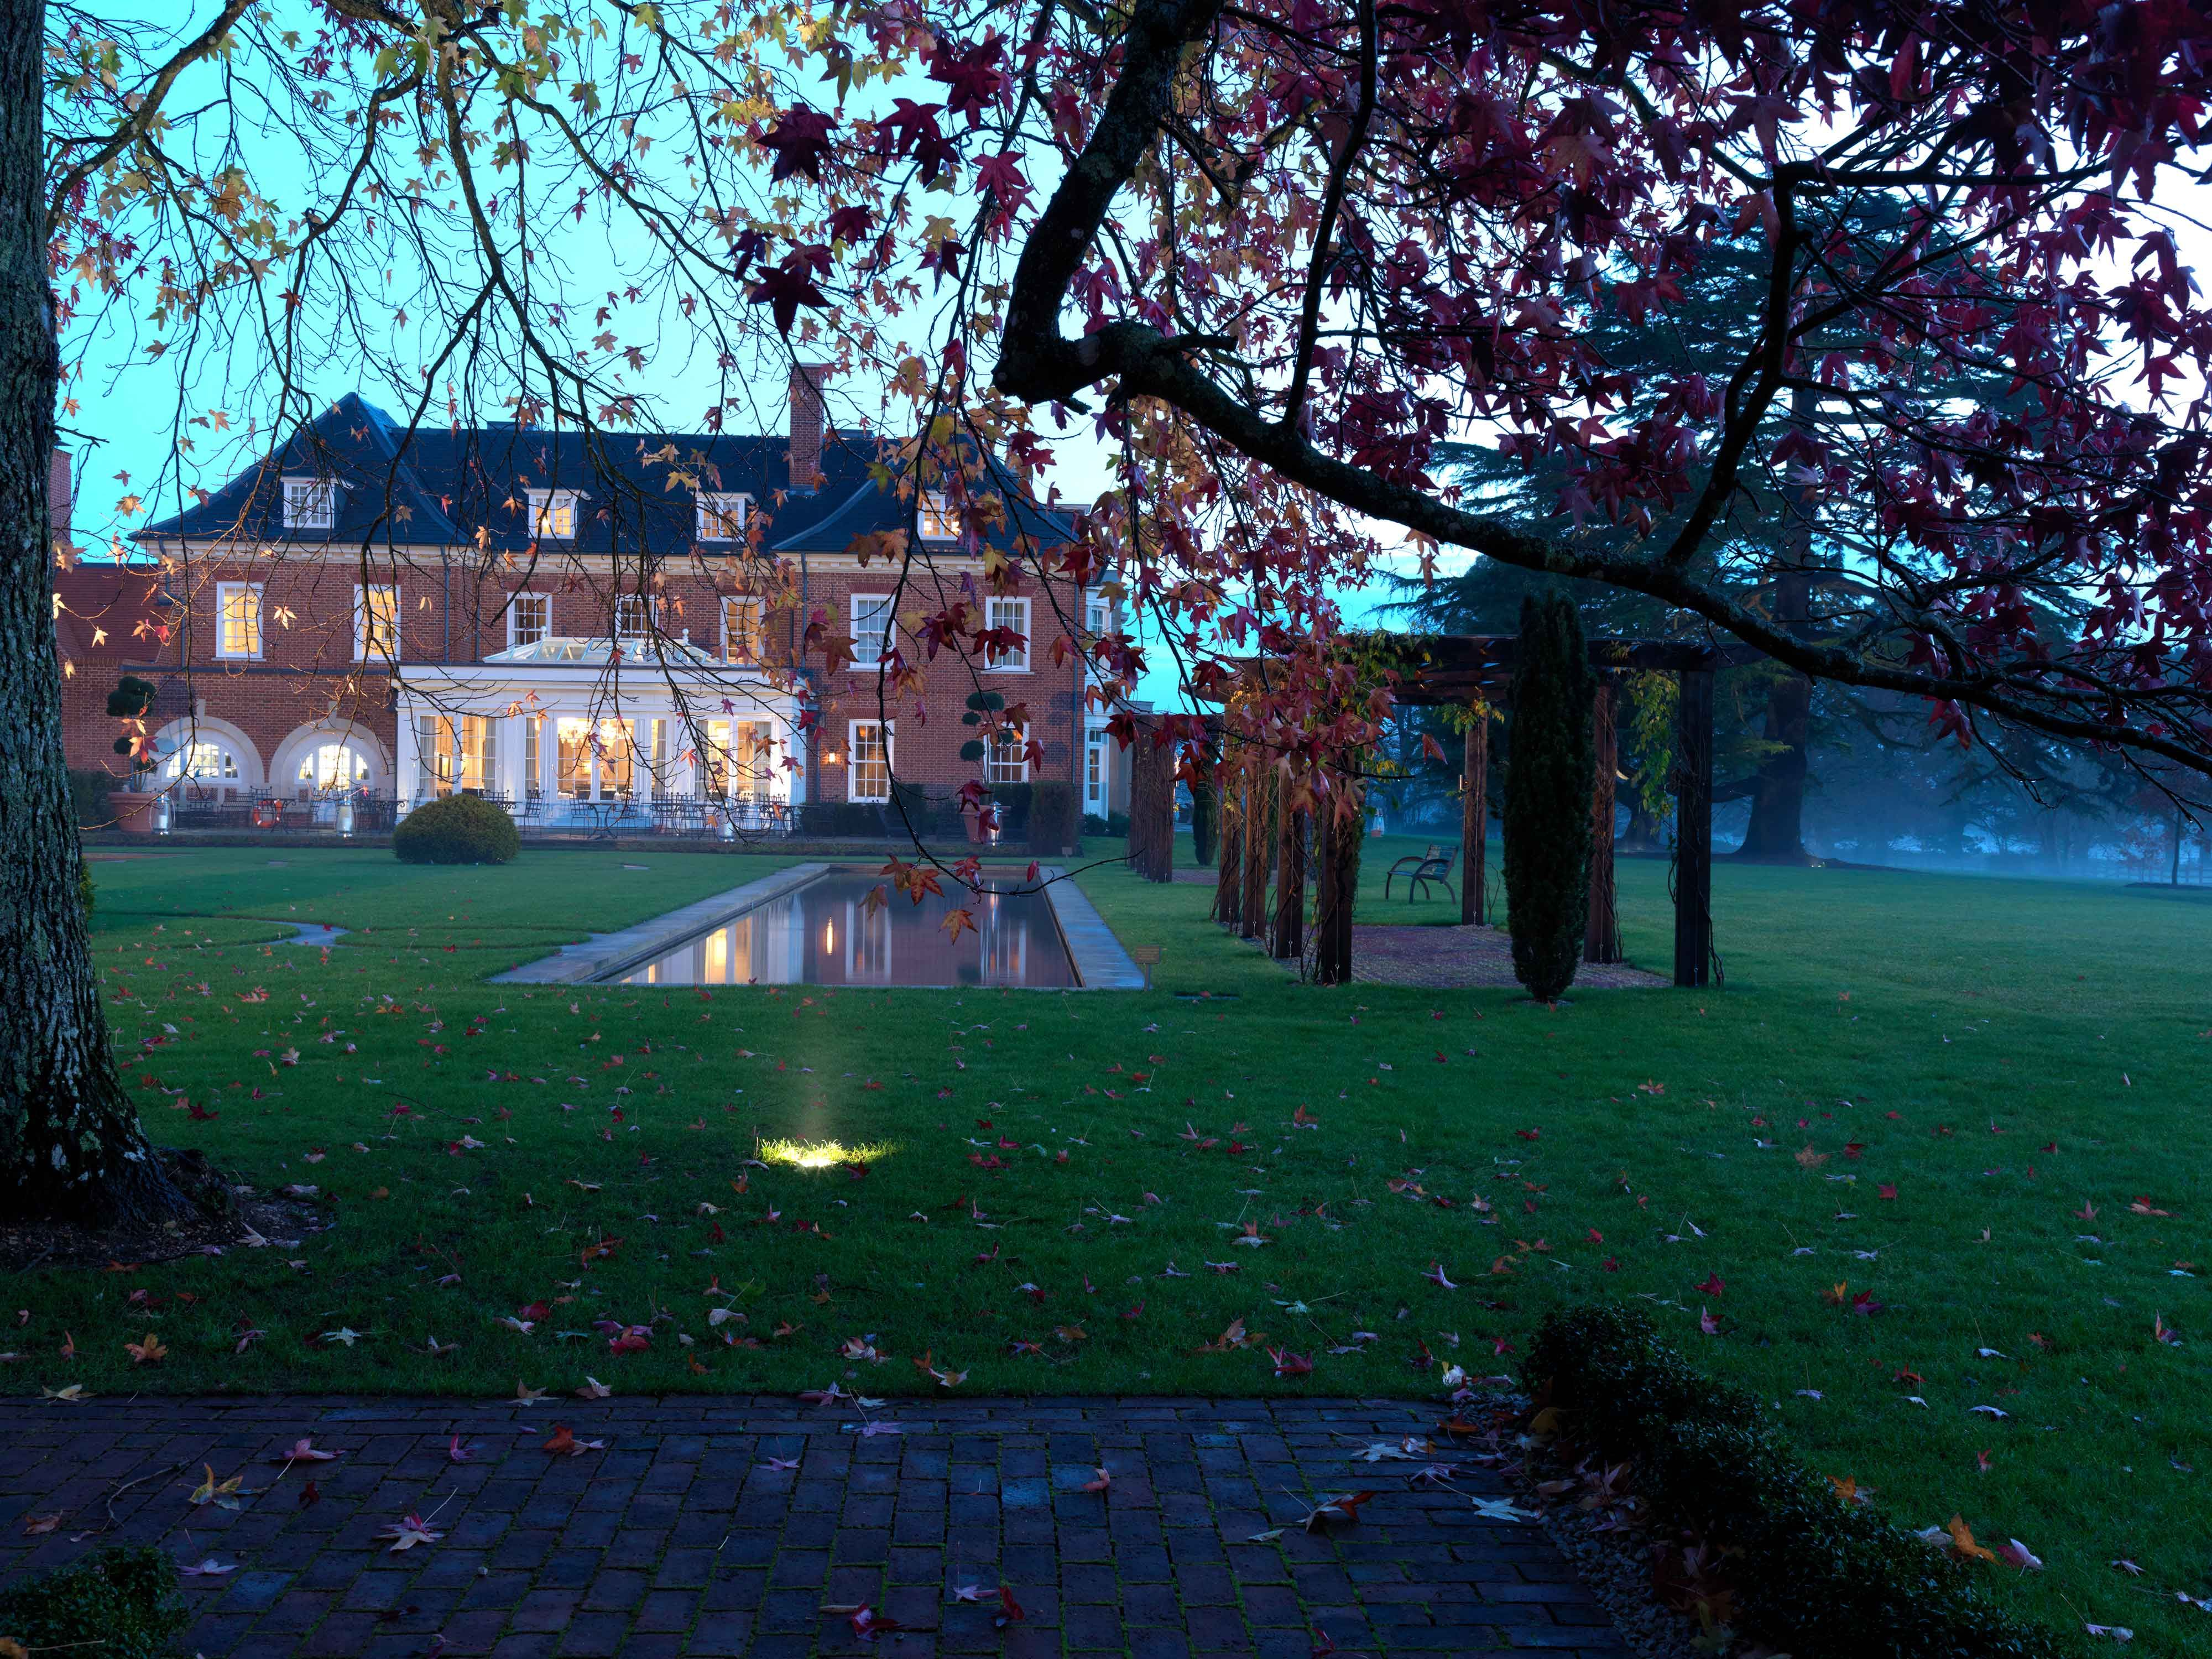 Limewood Hotel New Forest Luxury Country House England 5 Star In Hampshire